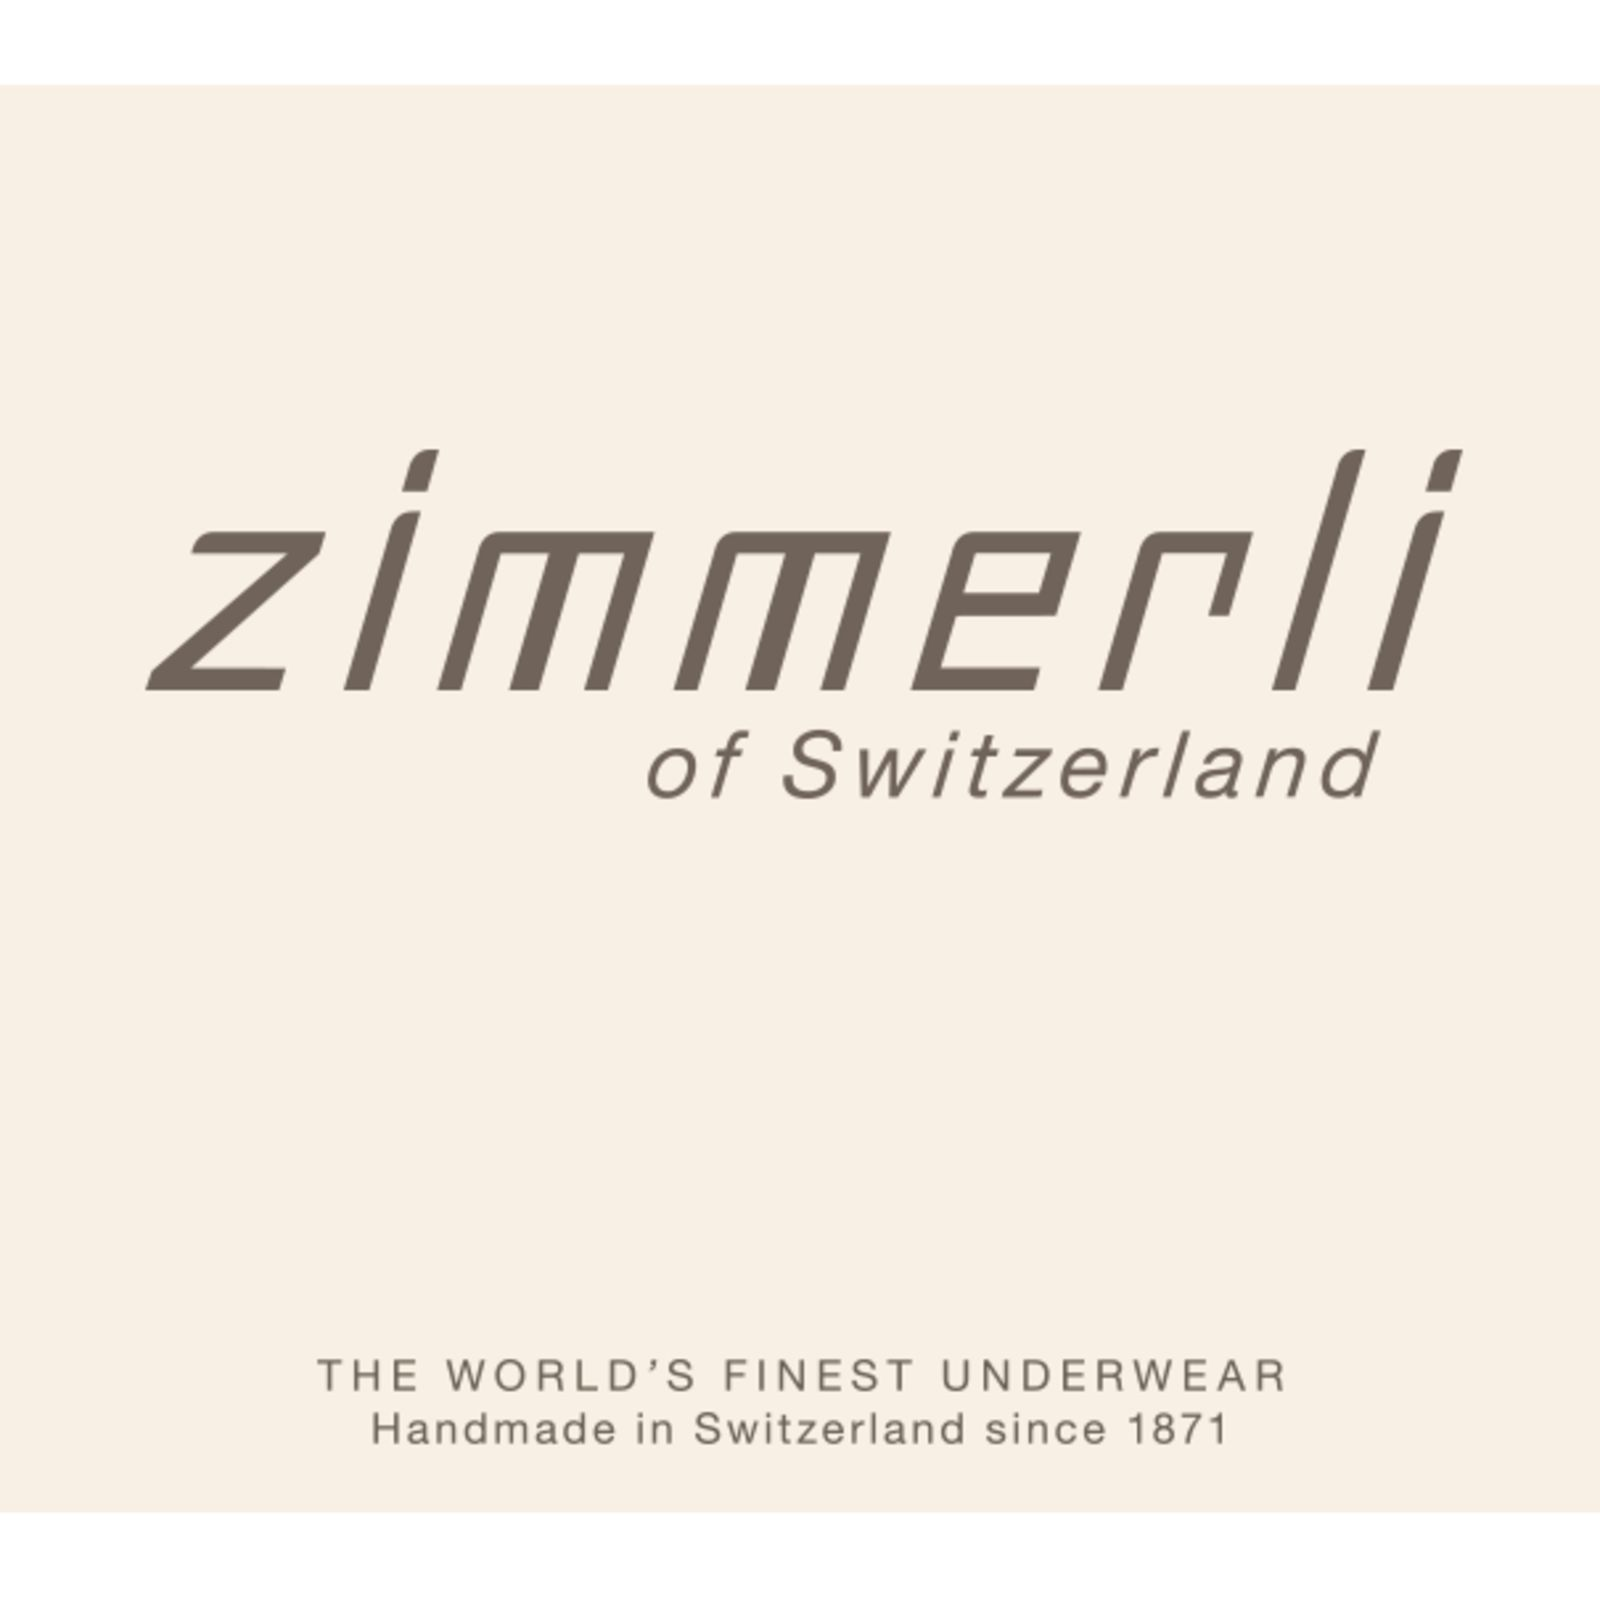 Zimmerli of Switzerland (Изображение 1)